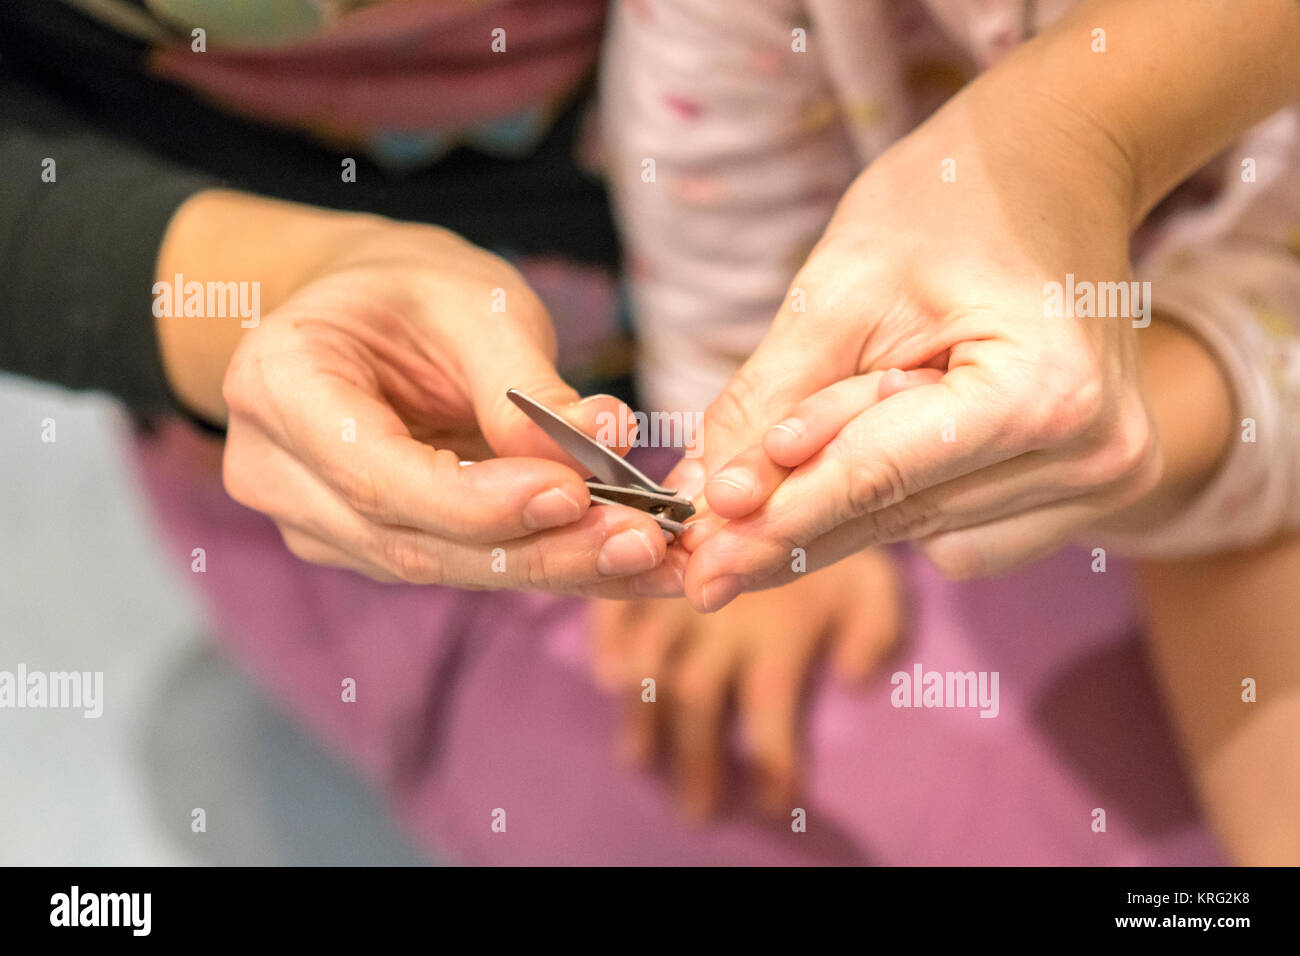 Mom is cutting finger nails to her son, selective focus, background ...